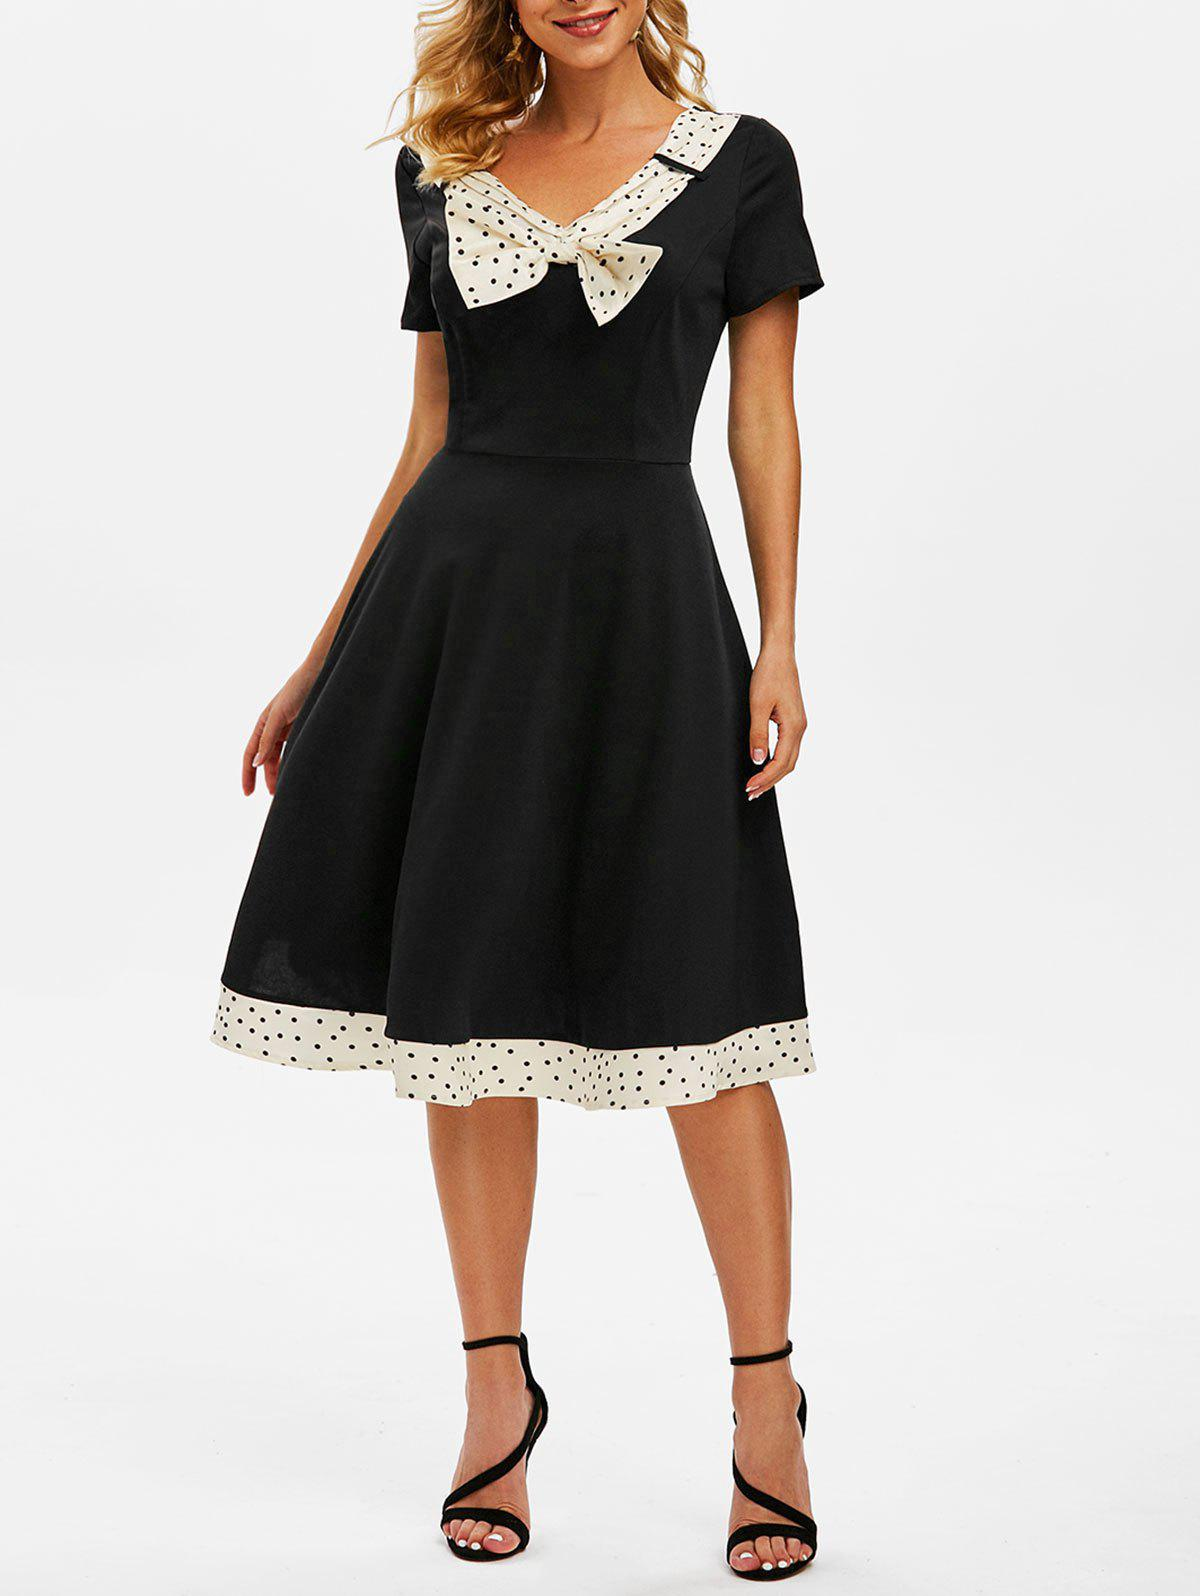 Sale Polka Dot Bowknot V Neck Vintage Dress